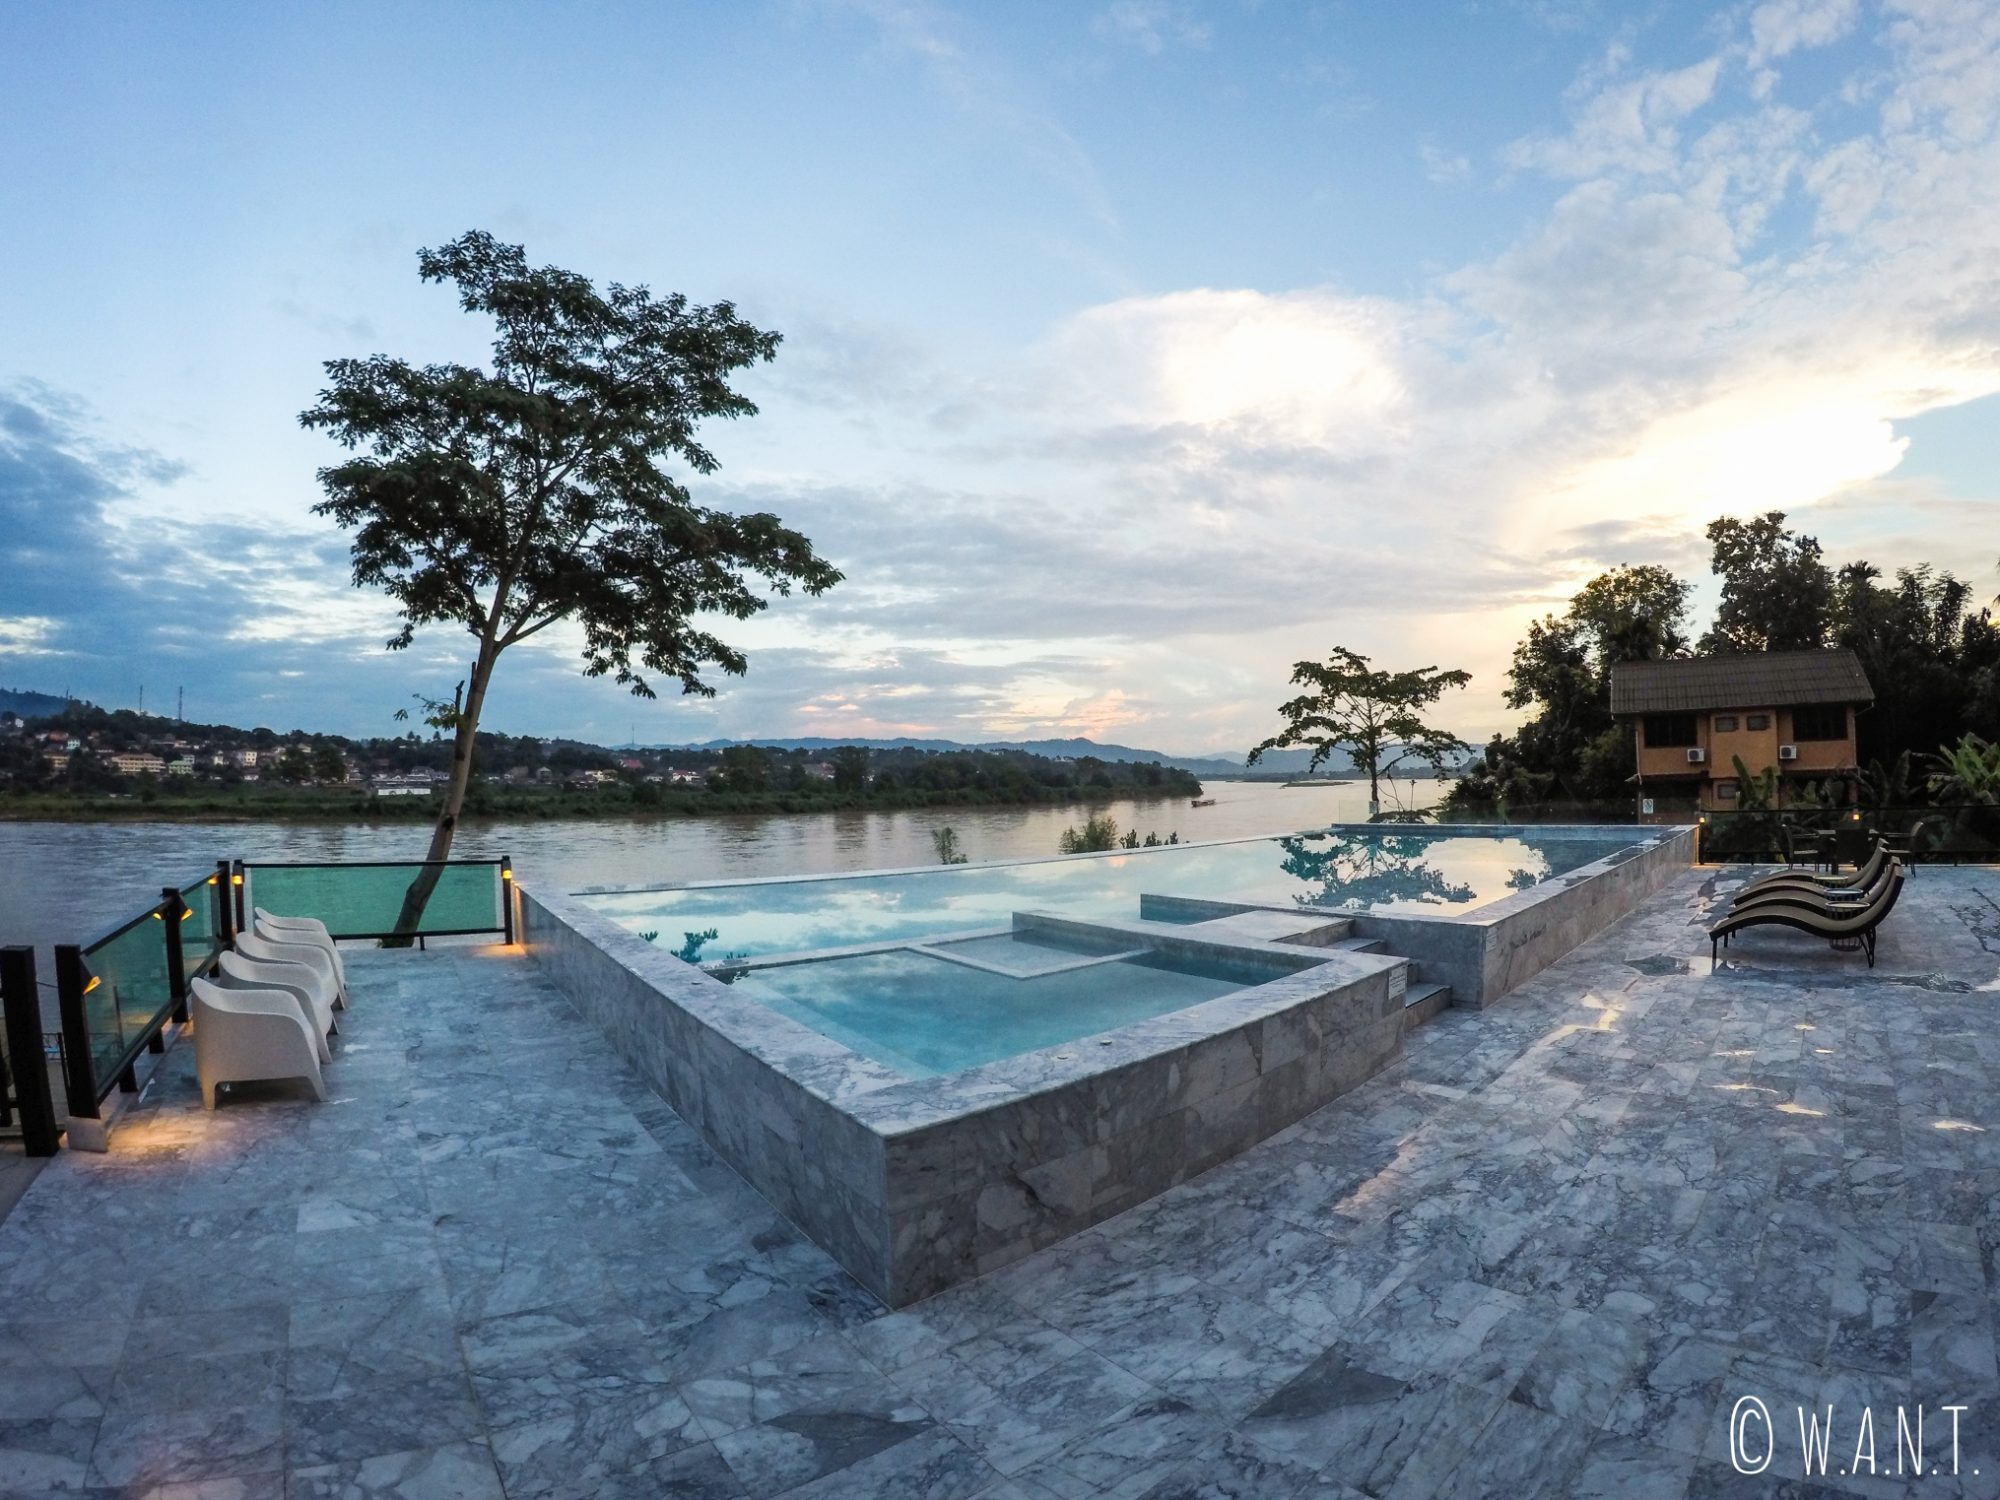 Chiang khong aux portes du triangle d or we are not trees for Piscine a debordement thailande